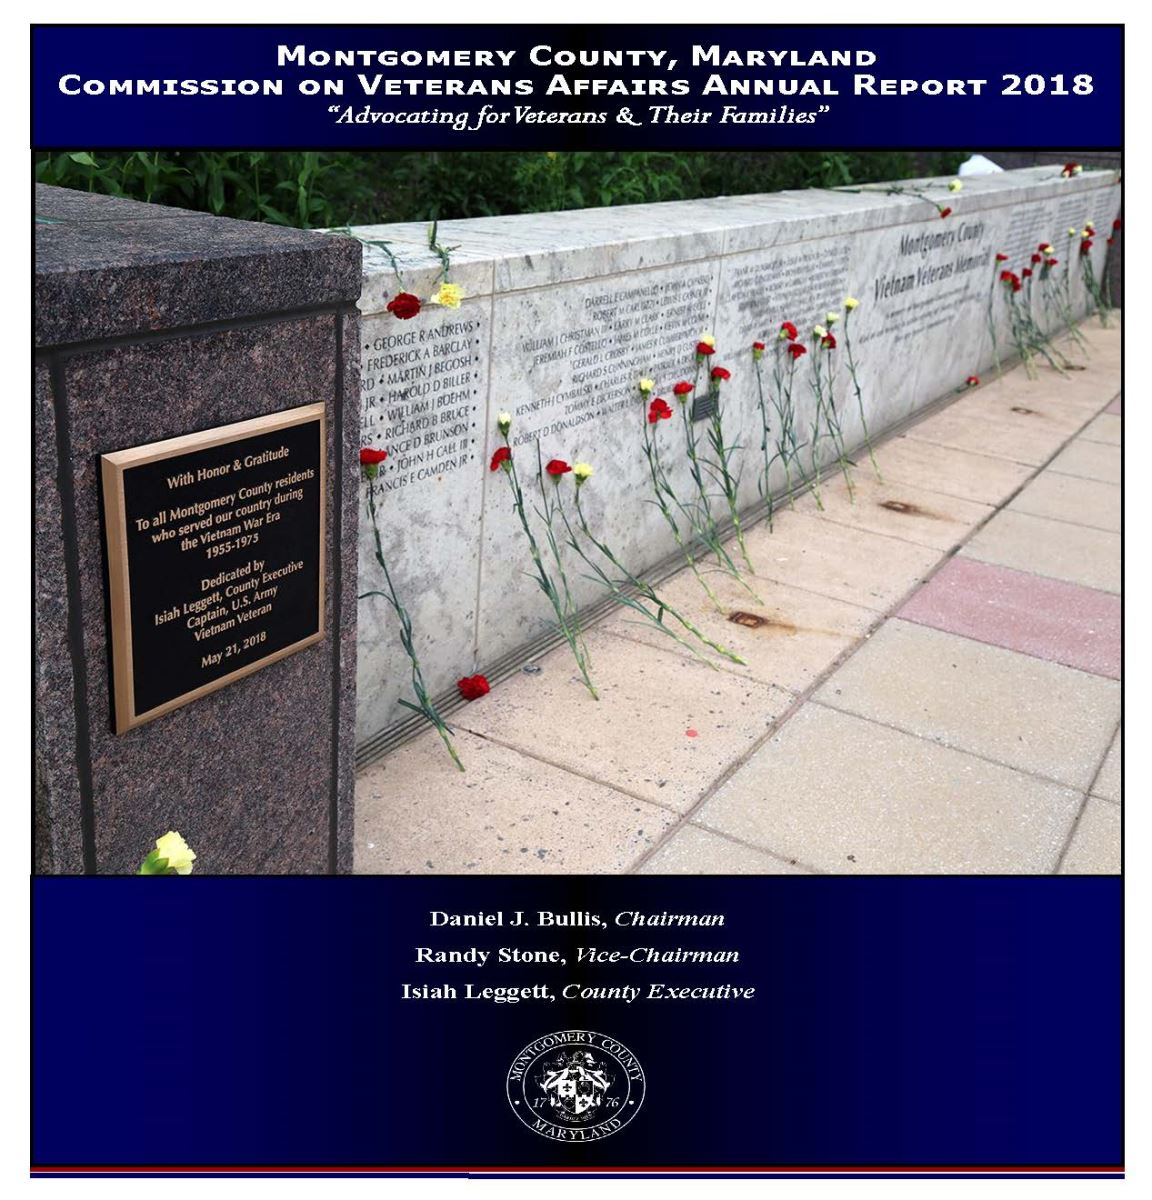 Commission on Veterans Affairs 2018 Annual Report Cover